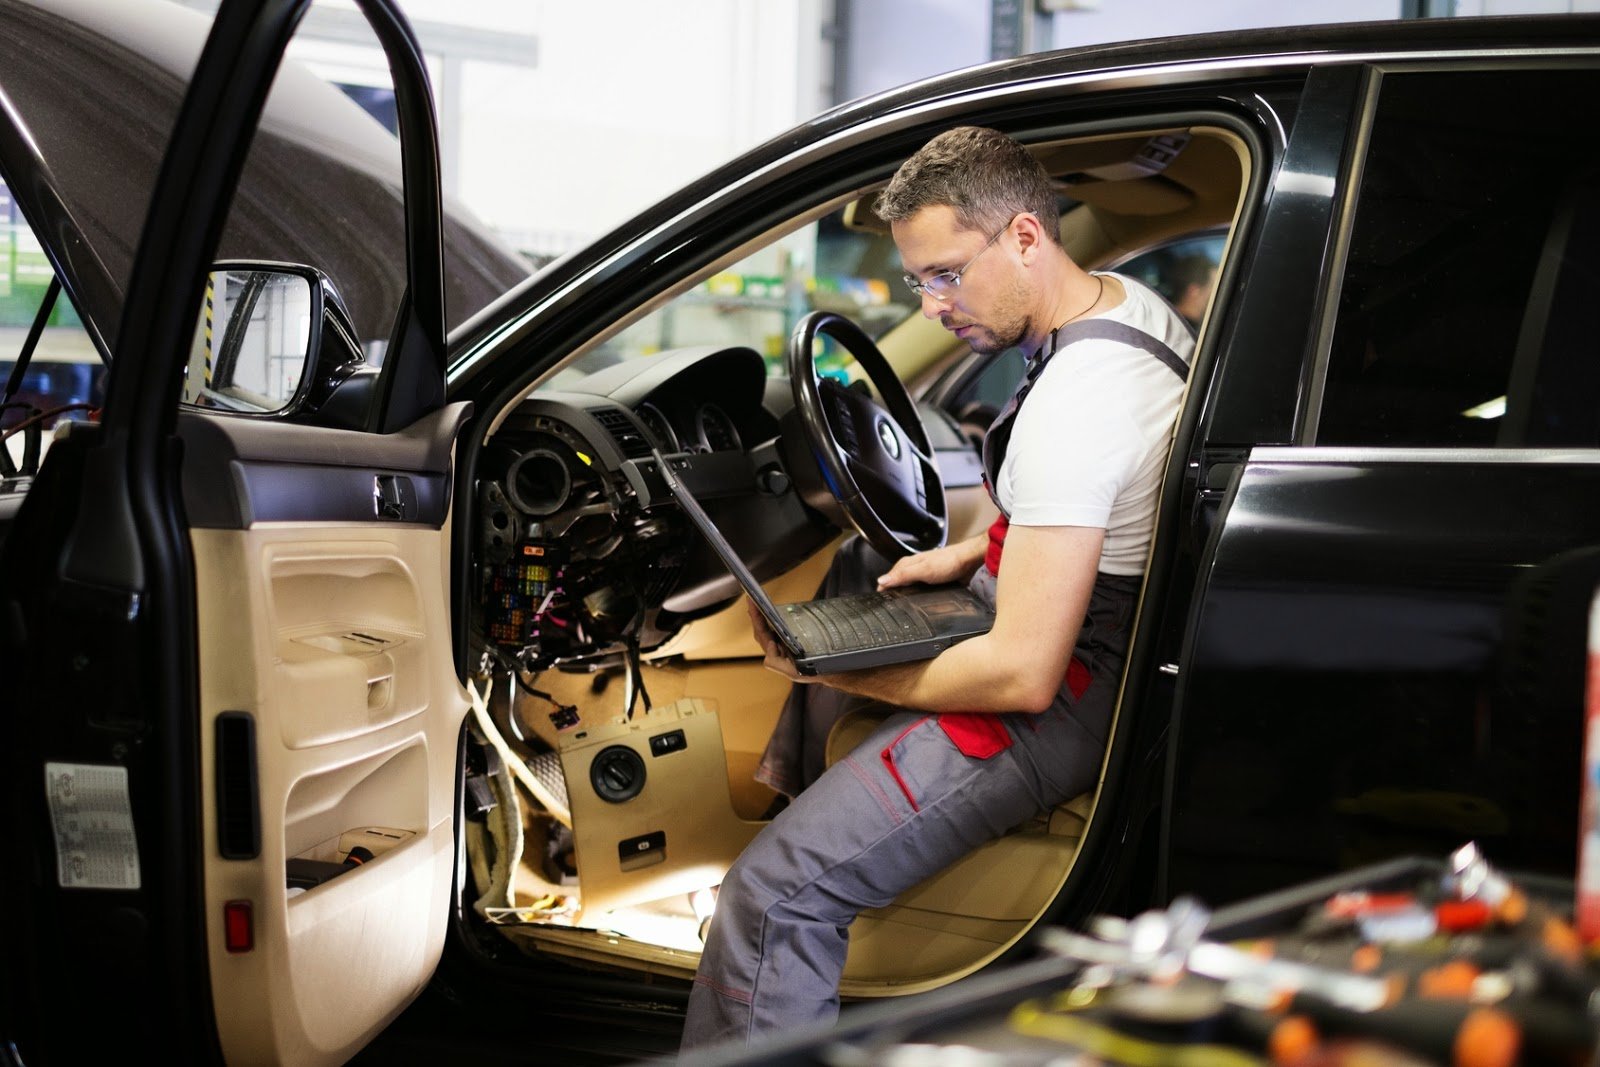 Benefits Of Taking The Services An Auto Electrician Regularly Pics Photos Do It Yourself Is Recommended That You Get A Few Common Inspections Done On Your Vehicle Periodically True Can Certain Checks